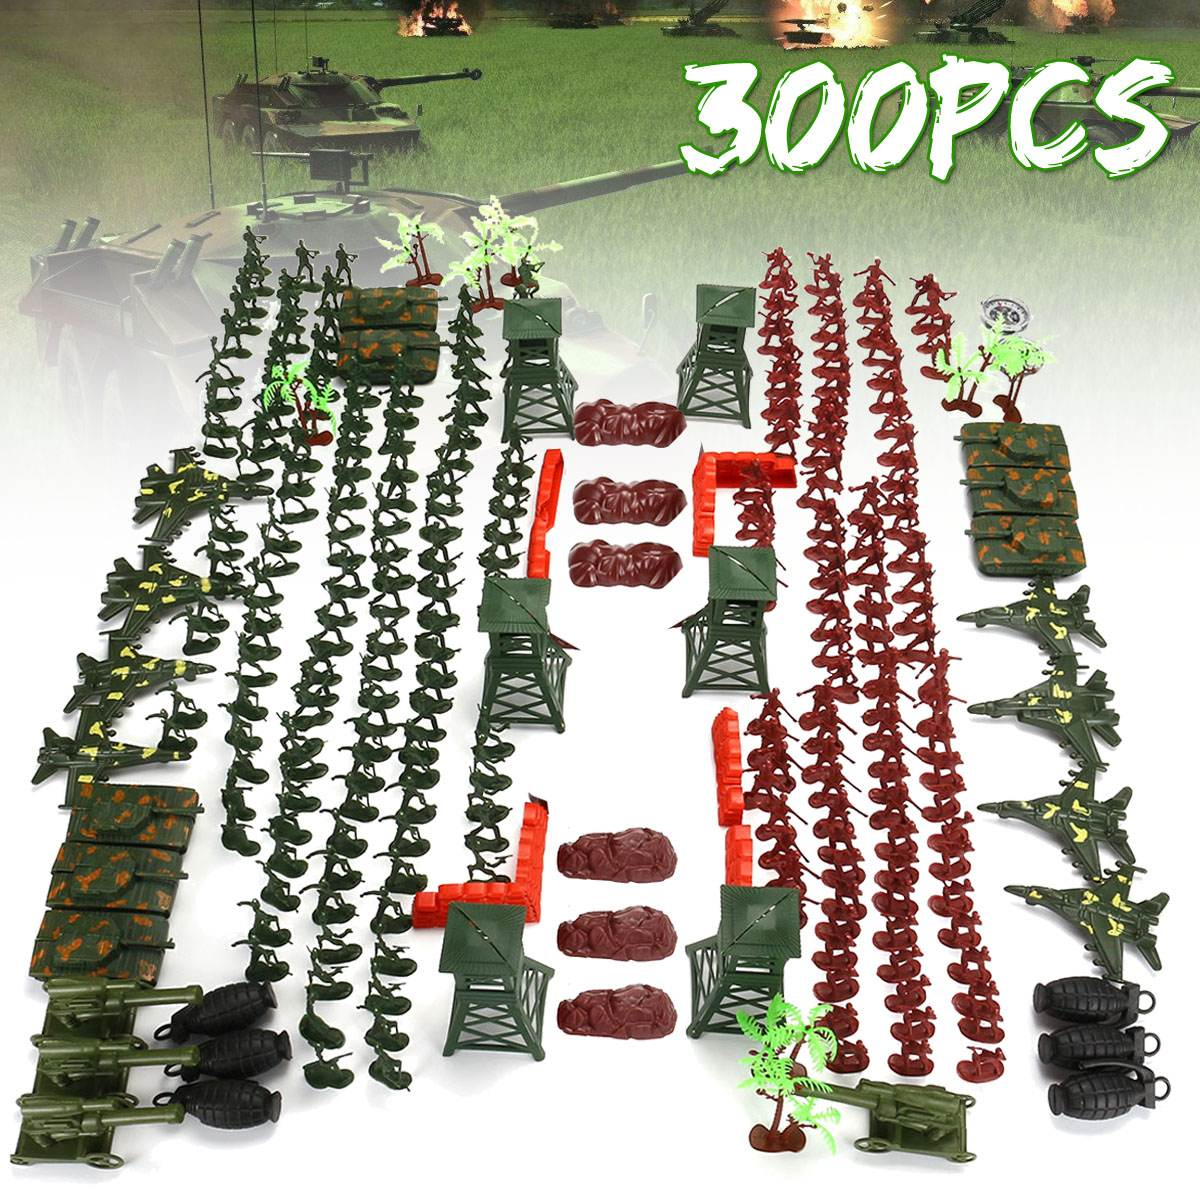 Cheap Sale 300pcs/set Plastic Assemble Soldier Kits Diy World War Ii Model Puzzle Assembling Military Sand Table Toys 2019 New Arrival Toys & Hobbies Model Building Kits